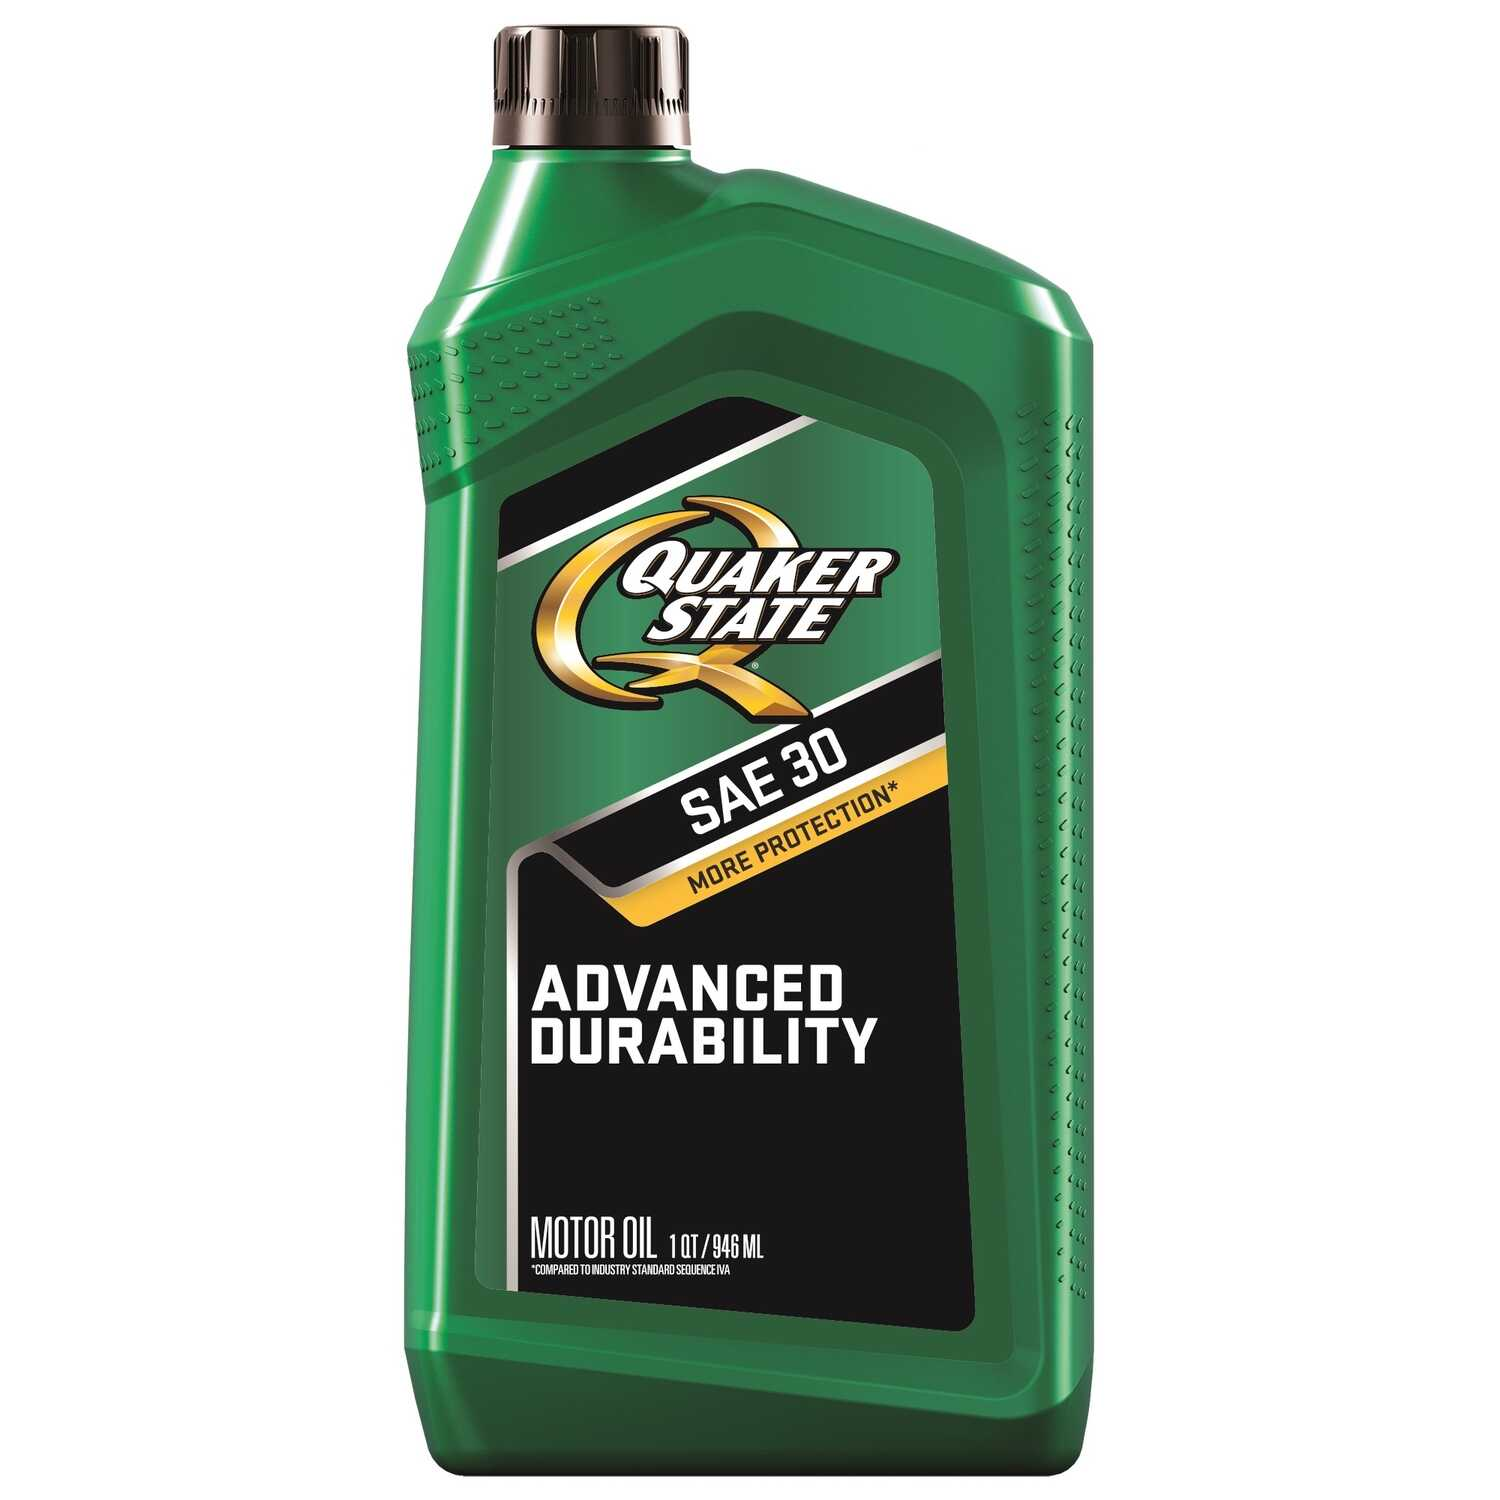 Quaker State  Peak Performance  HD-30  4 Cycle Engine  Motor Oil  1 qt.